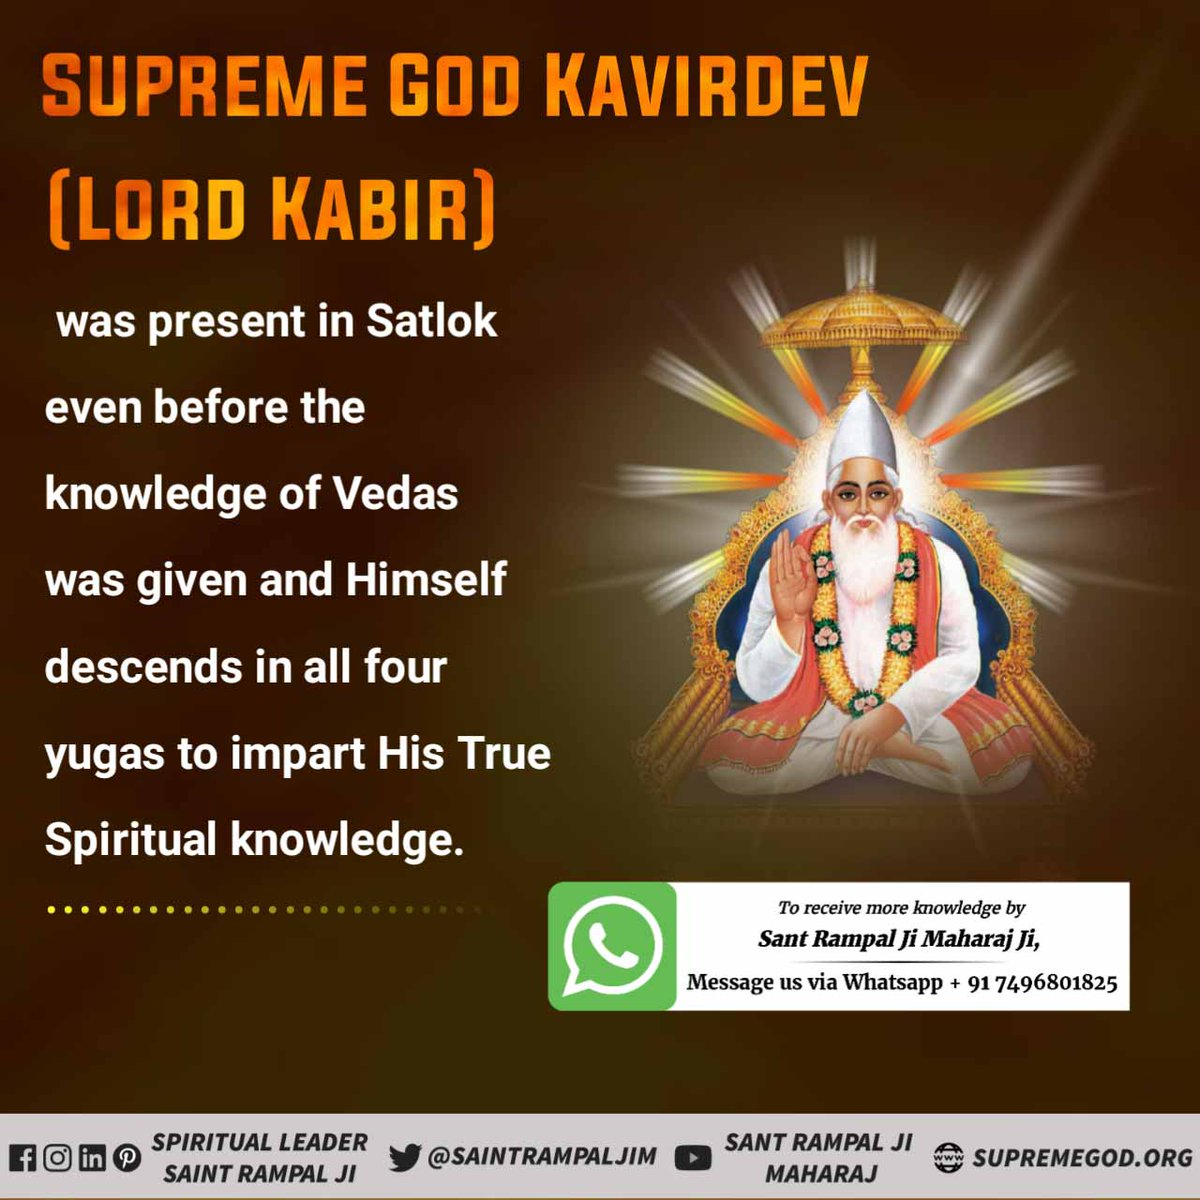 #sundayvibes  Supreme God Kavirdev (Lord Kabir) was present in Satlok even before the knowledge of Vedas was given and Himself descends in all four yugas to impart His True Spiritual knowledge.    For More information visit Satlok Ashram Youtube Channel.